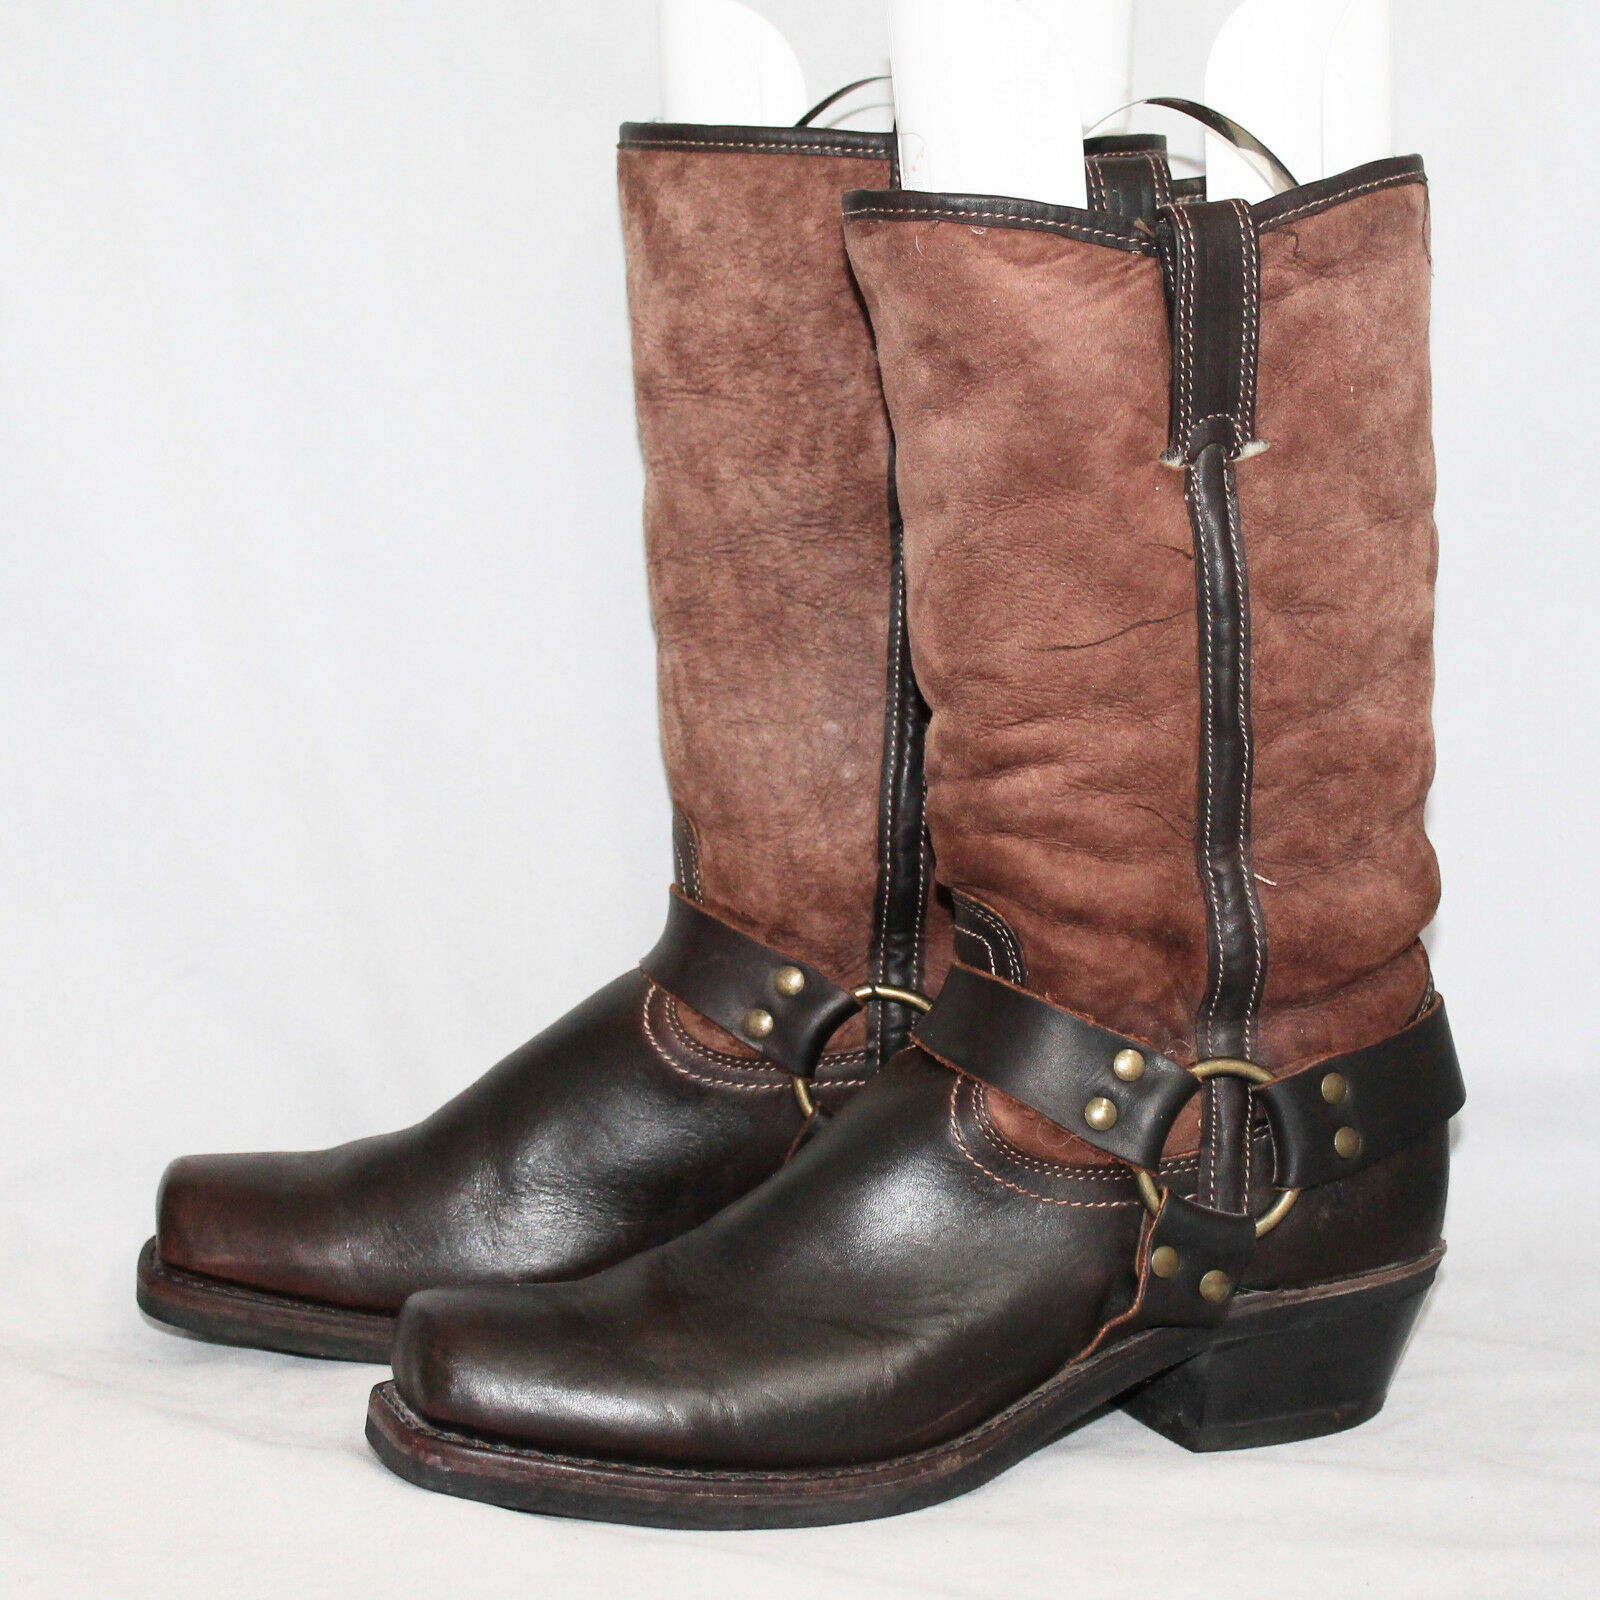 FRYE Shearling Lined Slouchy mocka Harness Boot 111048 Wo s 10M bspringaaa Square Toe